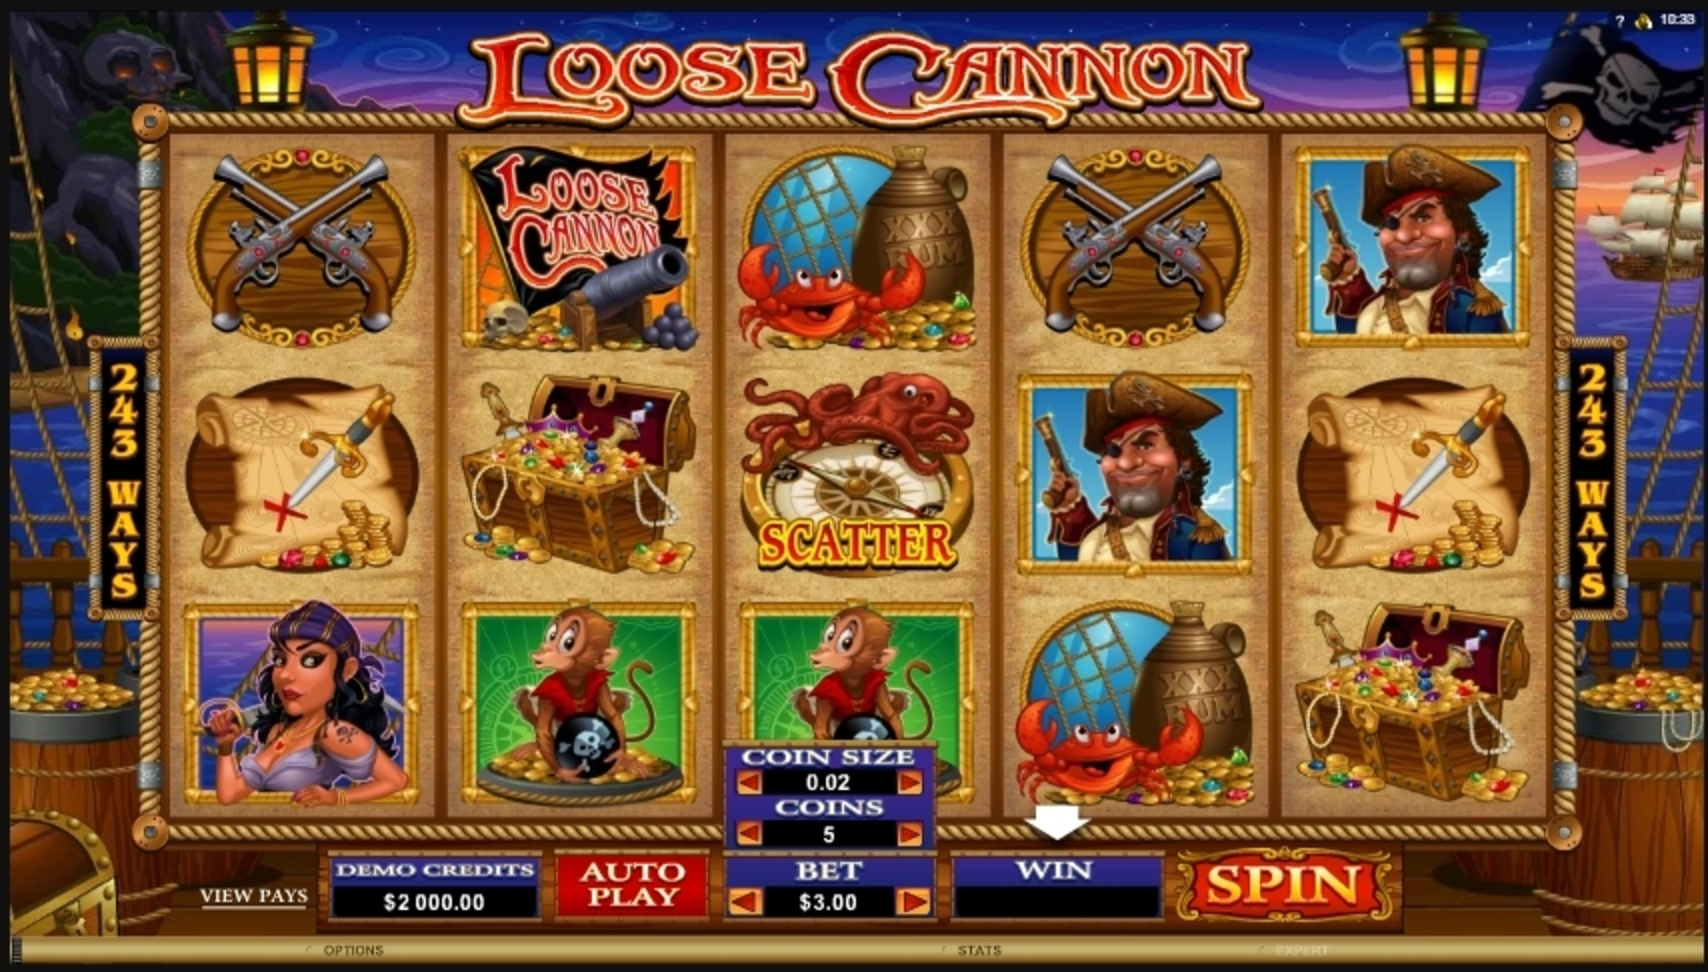 Reels in Loose Cannon Slot Game by Microgaming